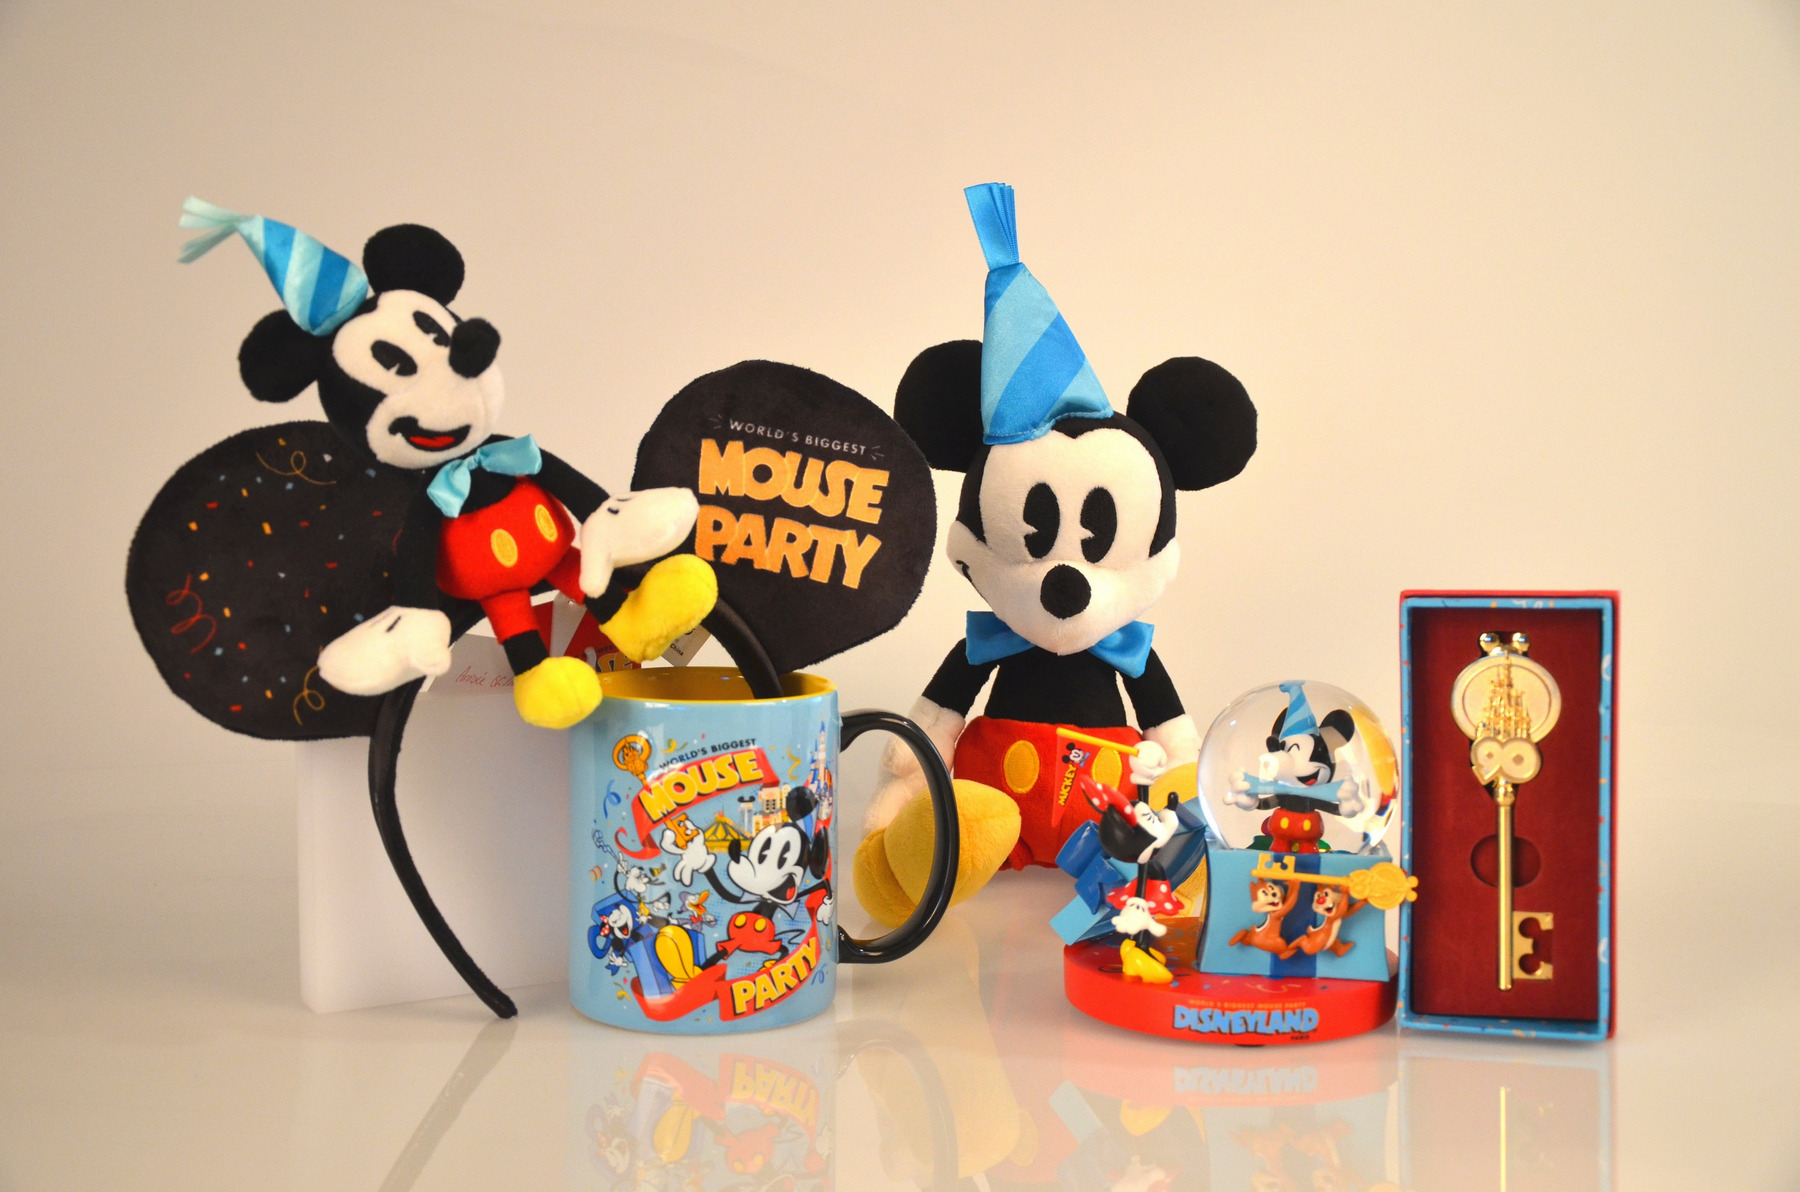 MICKEY 90 MOUSE PARTY - Pagina 3 A-dpco11